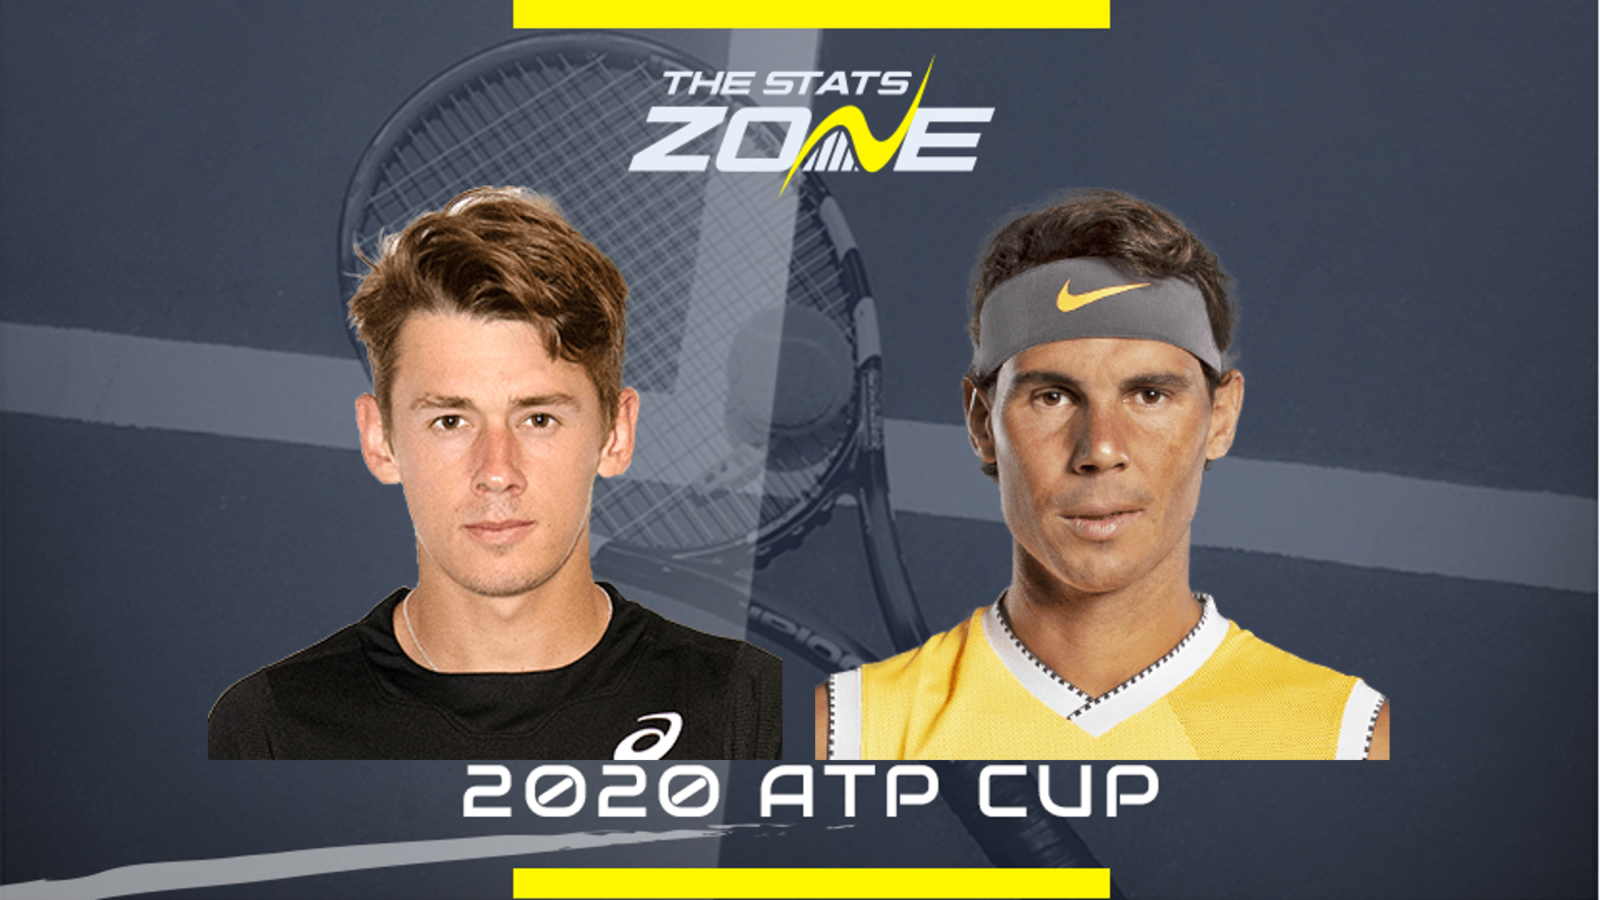 Nadal v Djokovic set for ATP Cup final